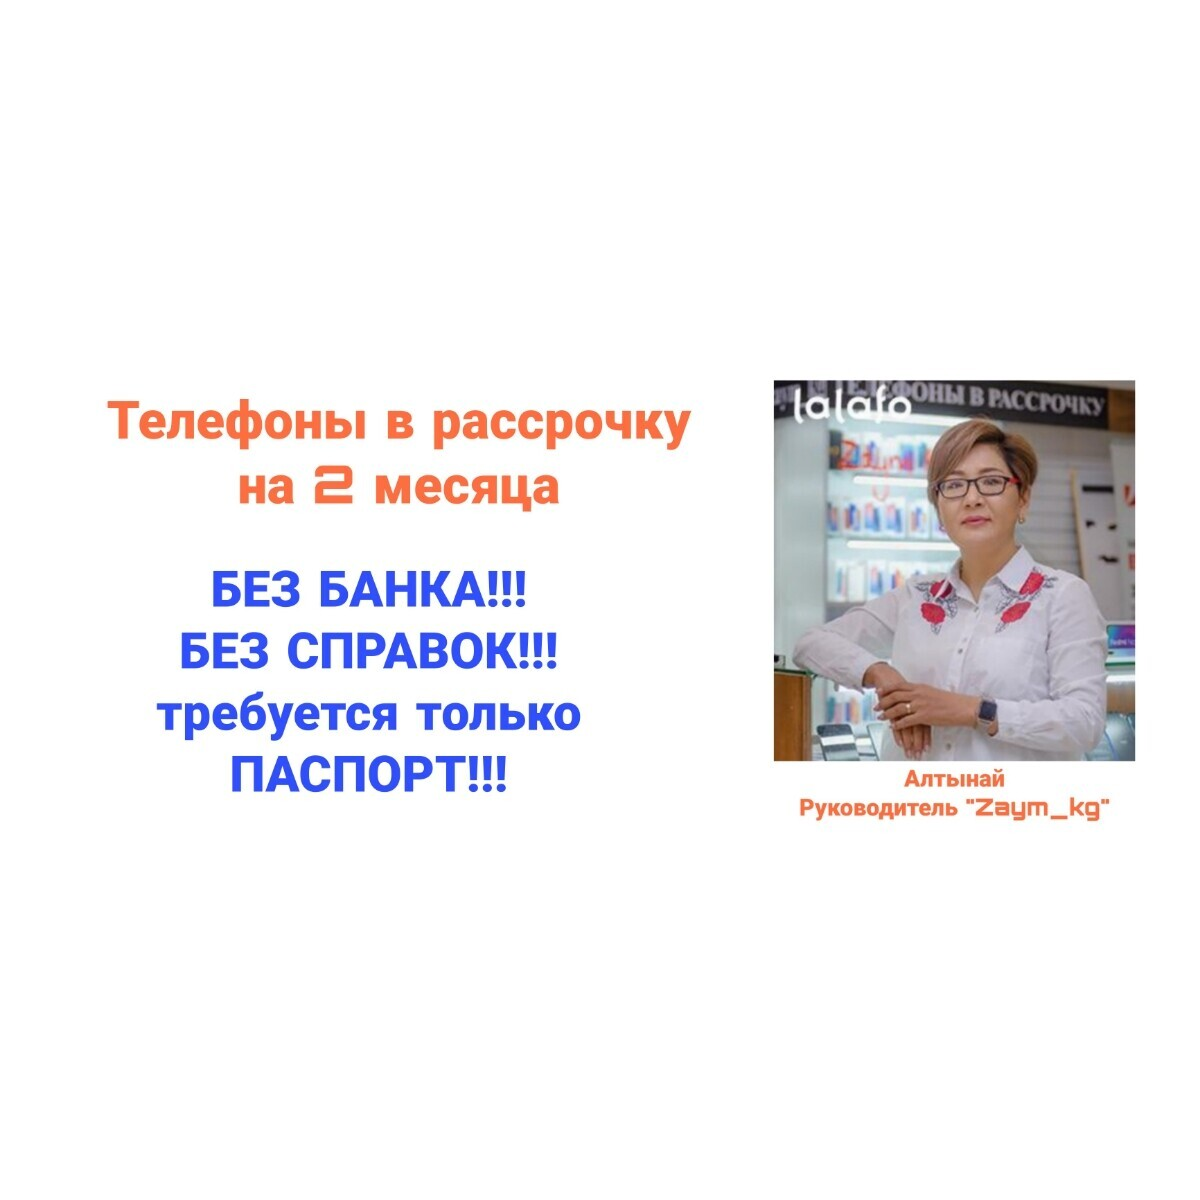 Zaym_kg - business profile of the company on lalafo.kg in Кыргызстан